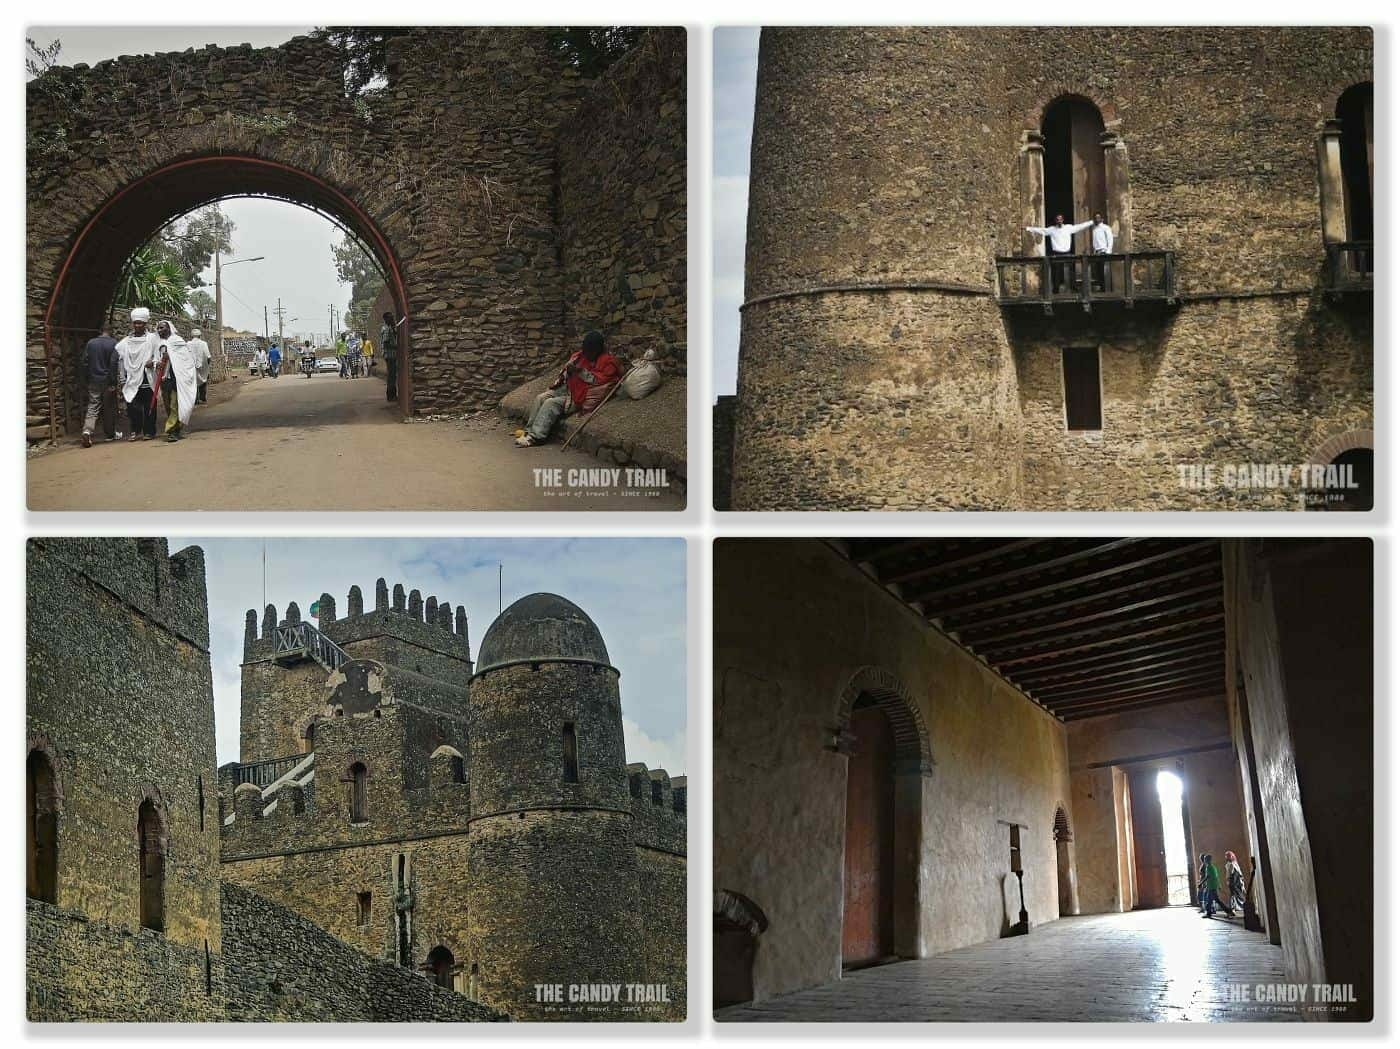 Images of Castles in the Royal enclosure at Gondar's World Heritage Site in Ethiopia.